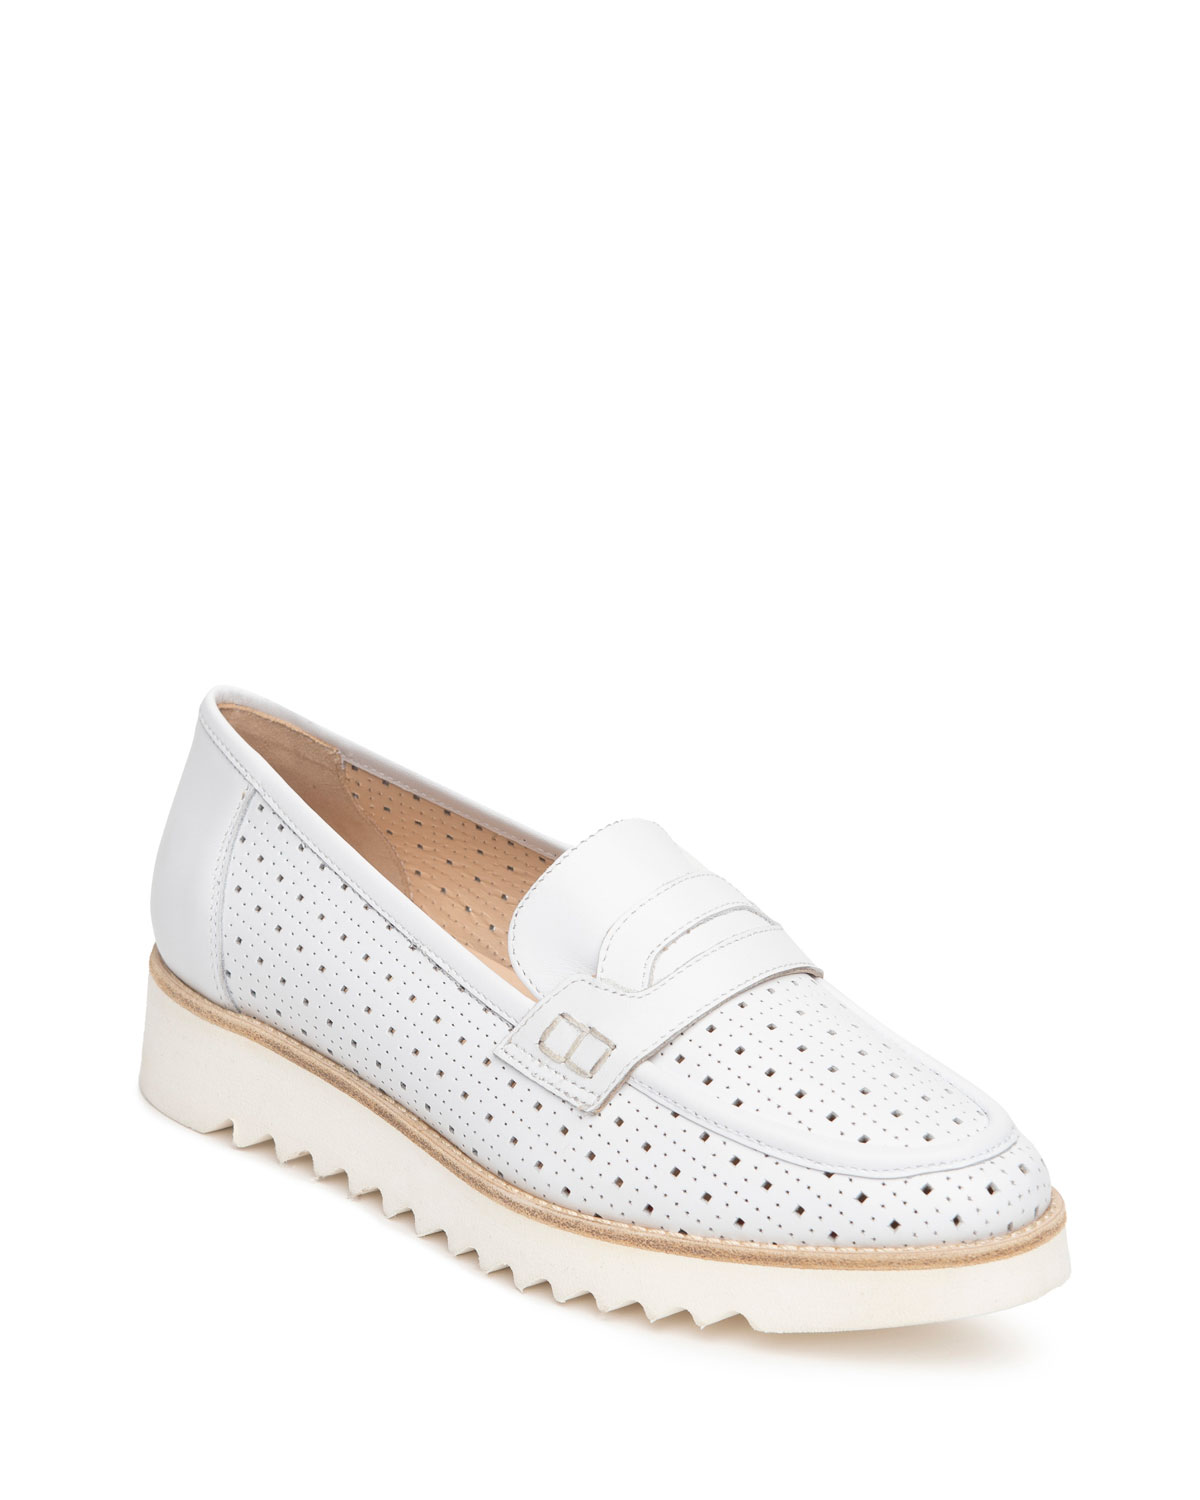 Perforated Flatform Penny Loafers